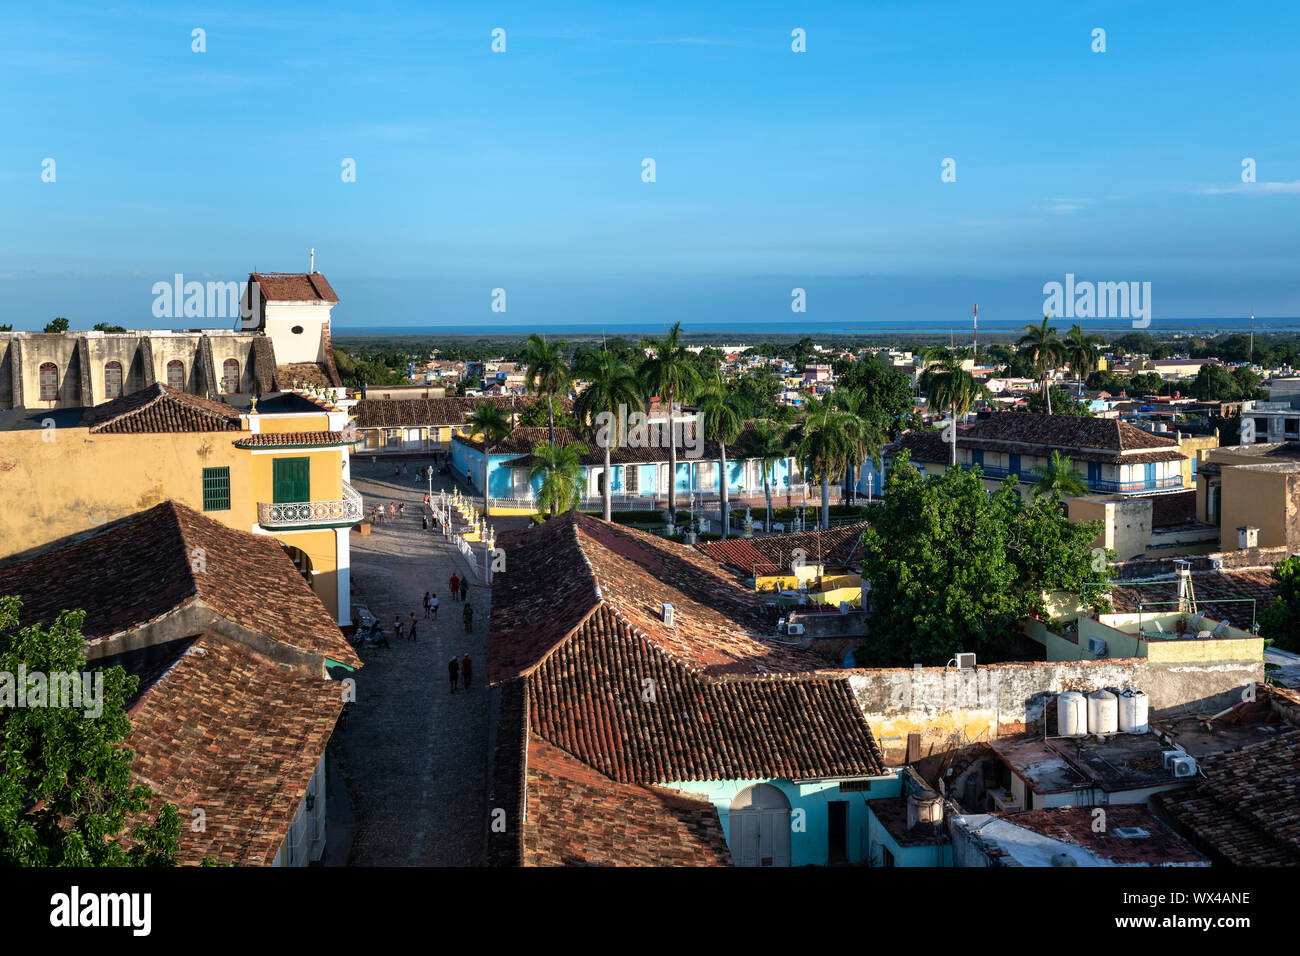 Trinidad, Cuba - colonial town cityscape. UNESCO World Heritage Site. Stock Photo